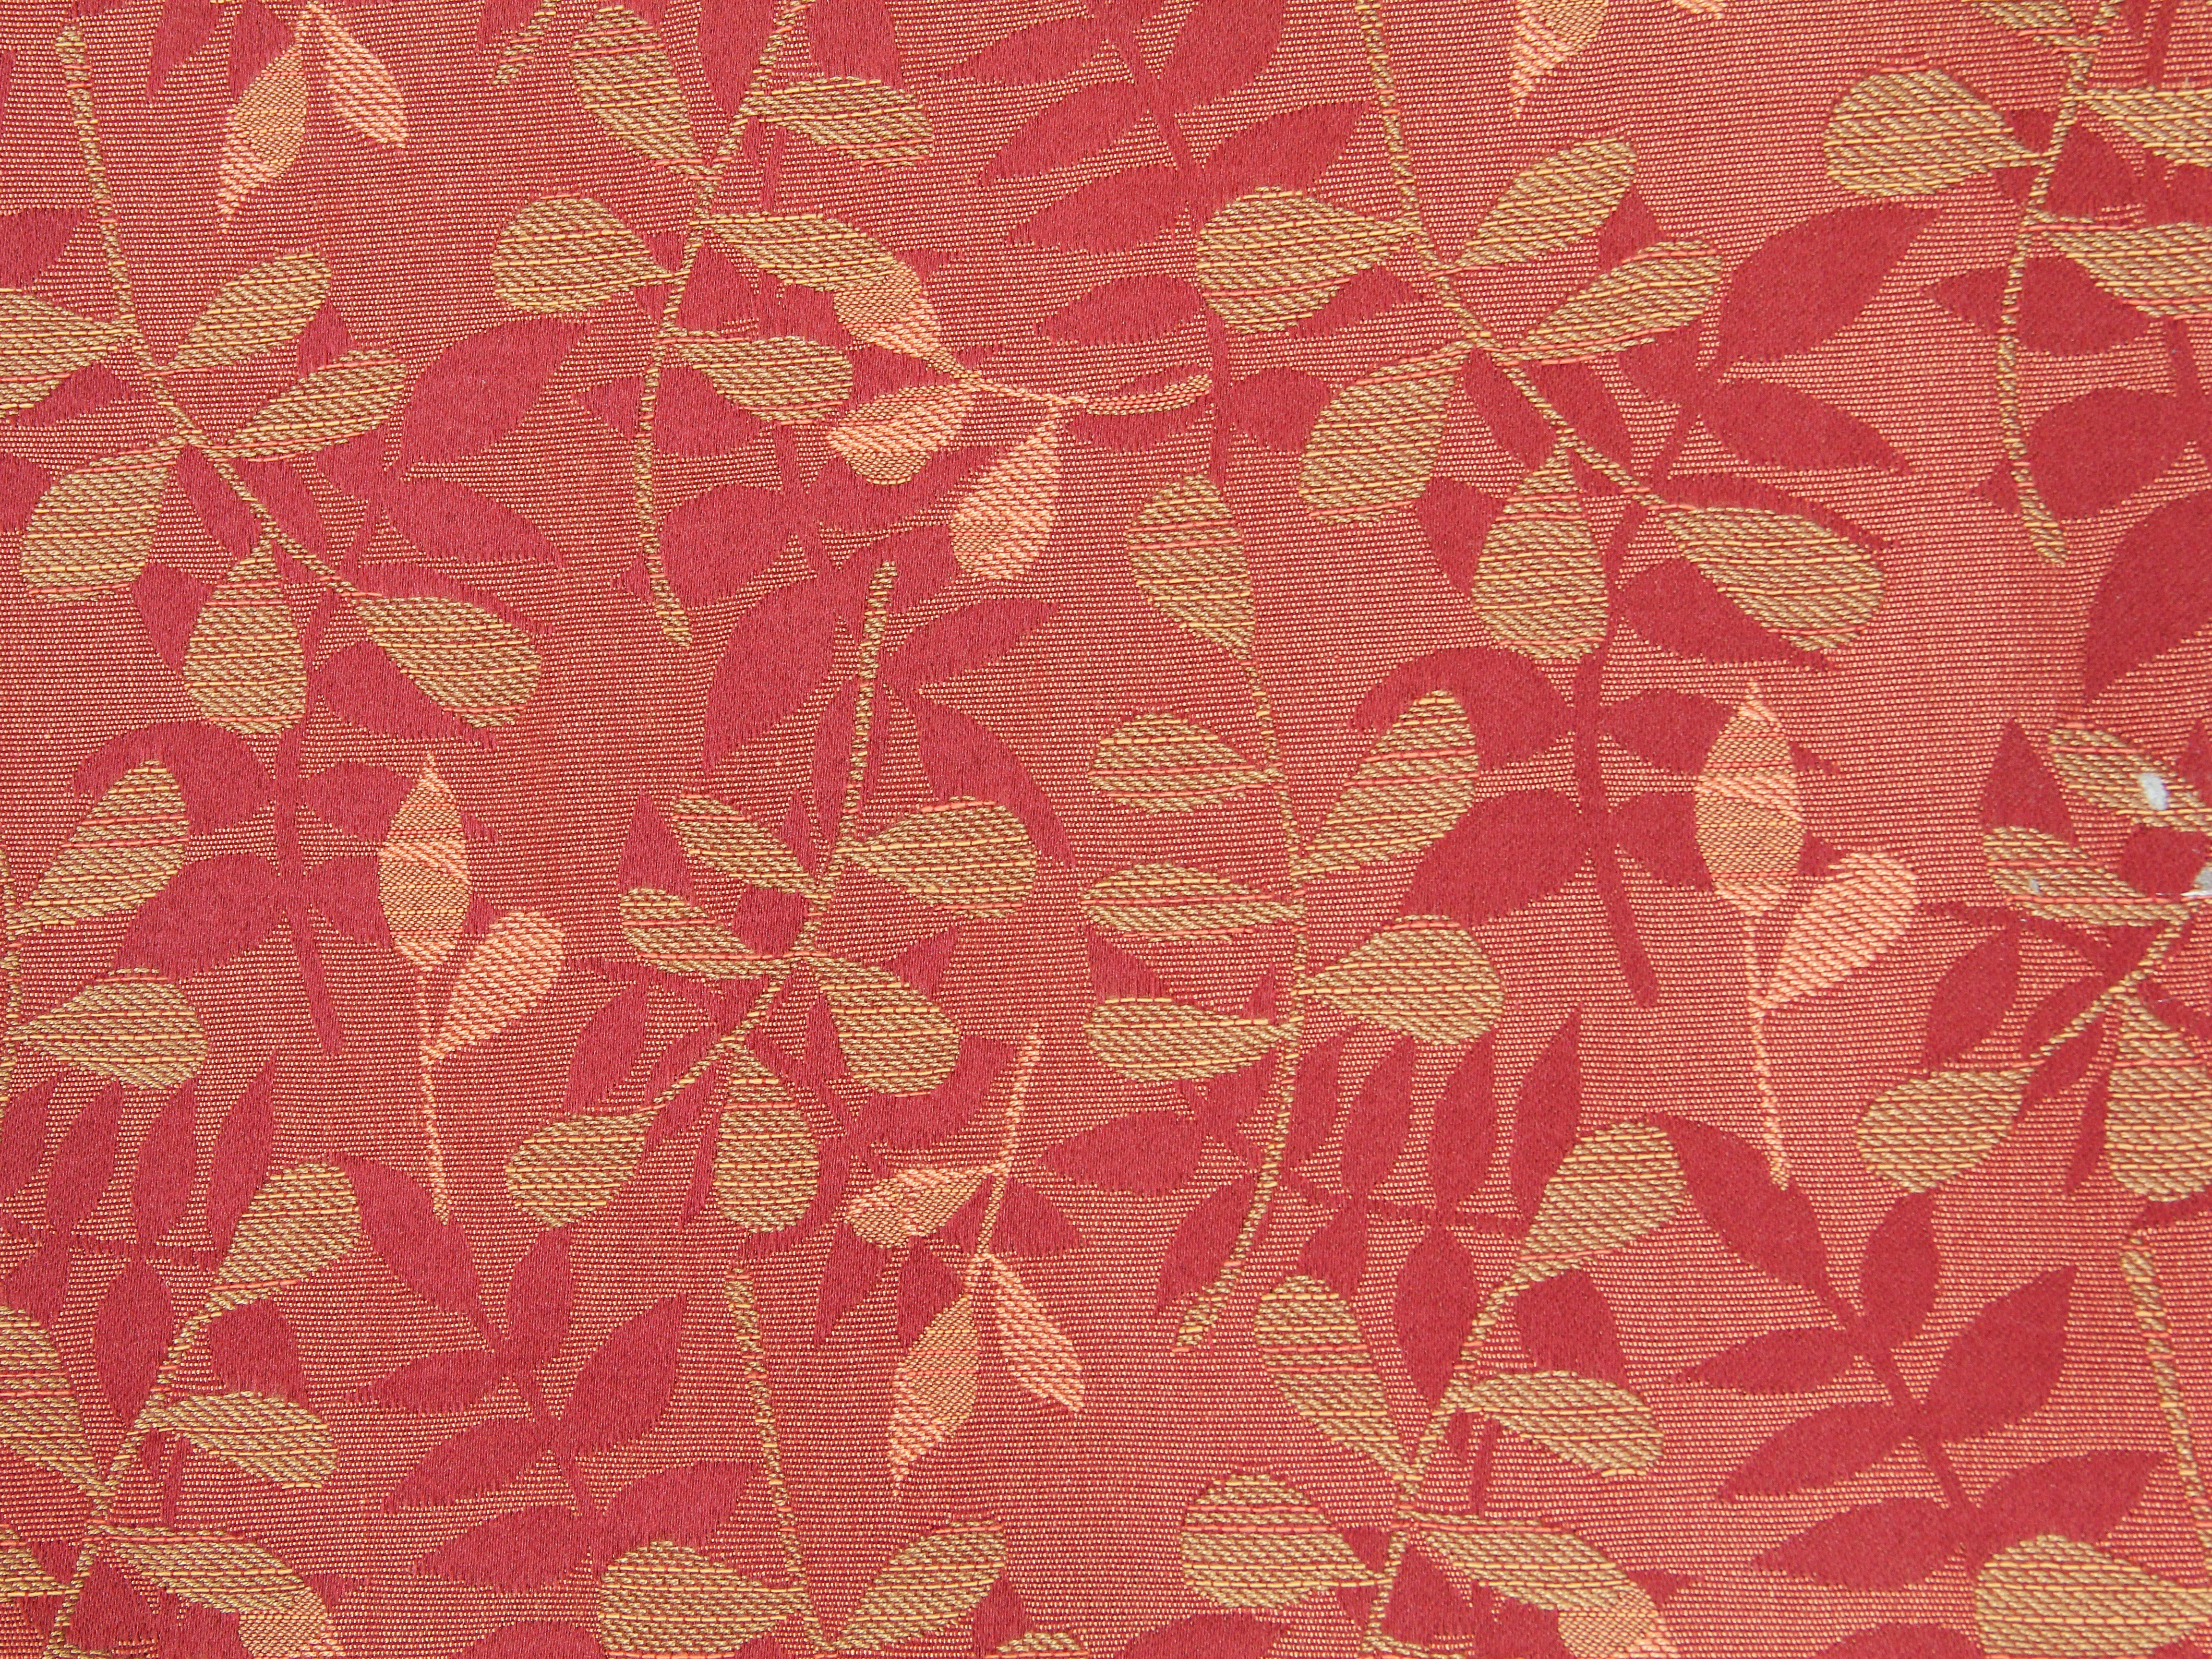 fabric texture red leaf pattern floral print desktop background ...